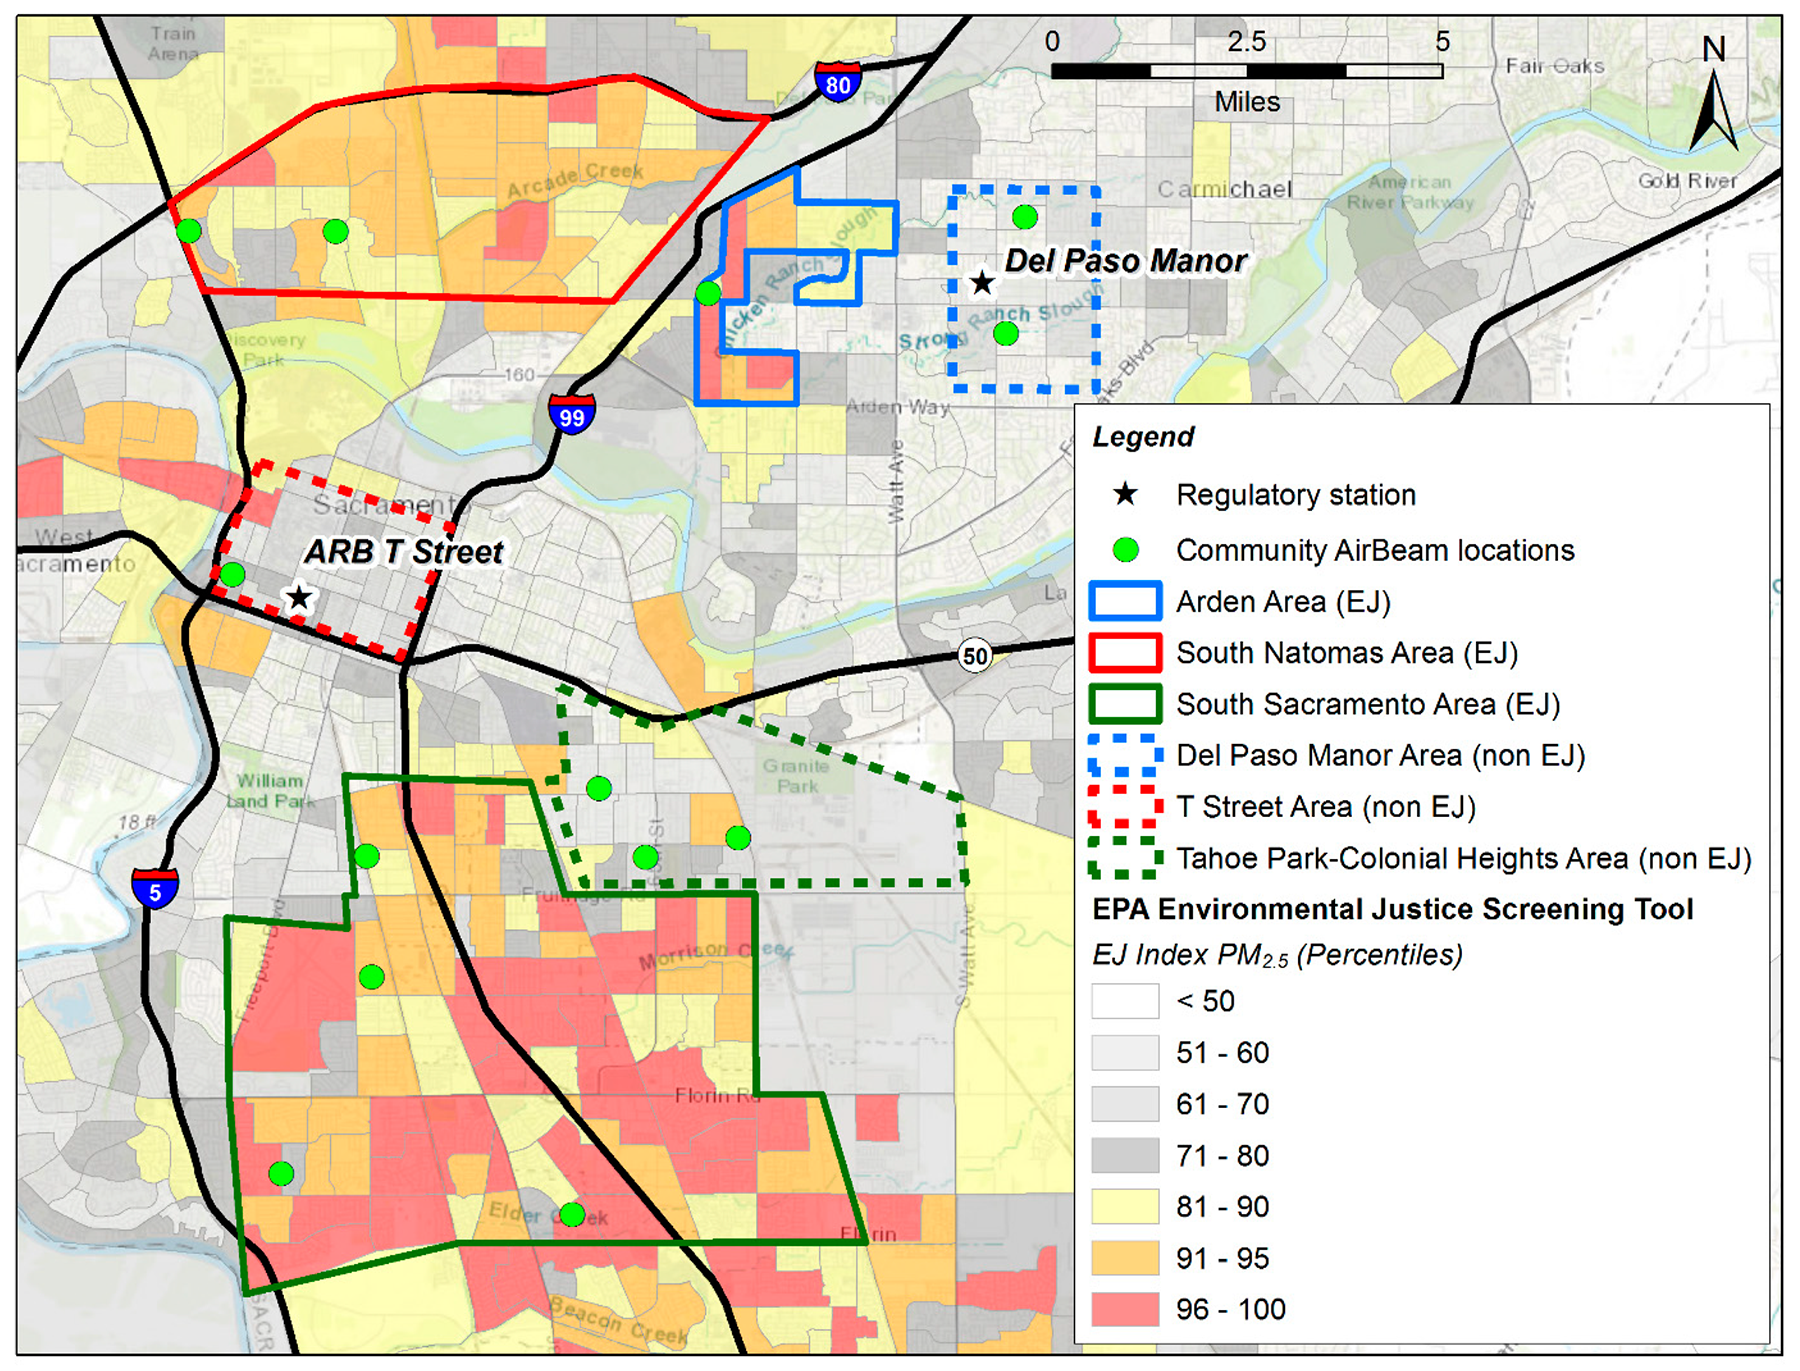 STI Study Examines Using Low-Cost Sensor Network to Measure the Spatial and Temporal Variability of Air Pollution